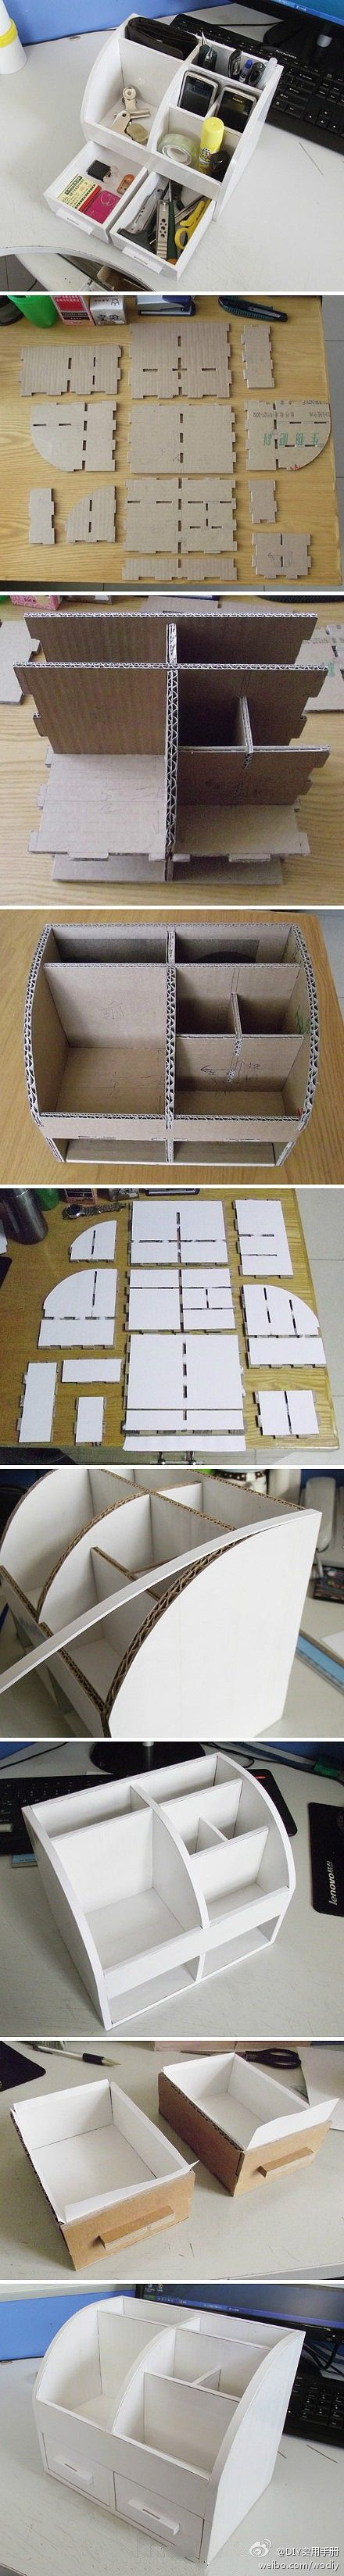 DIY :office organizer